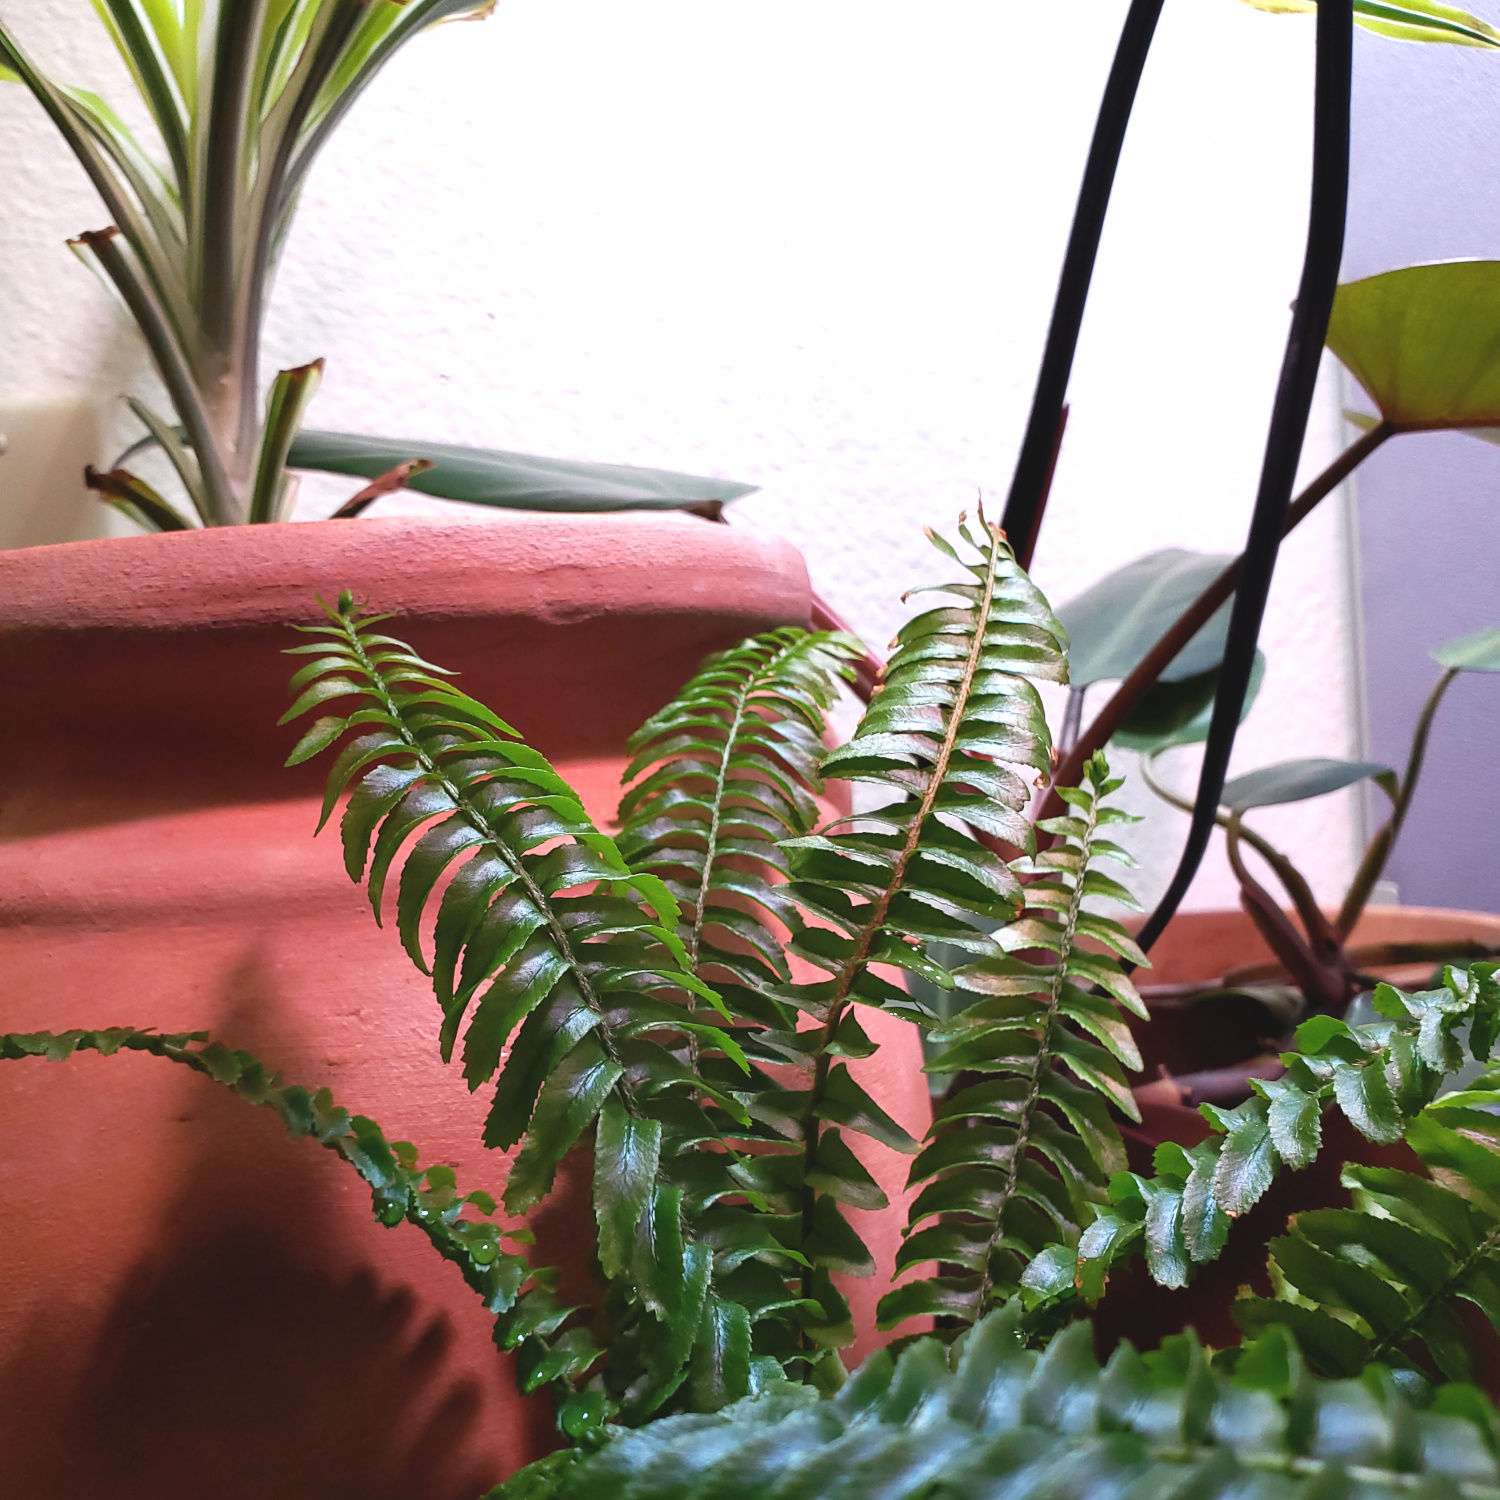 The Boston fern is growing happily under grow lights